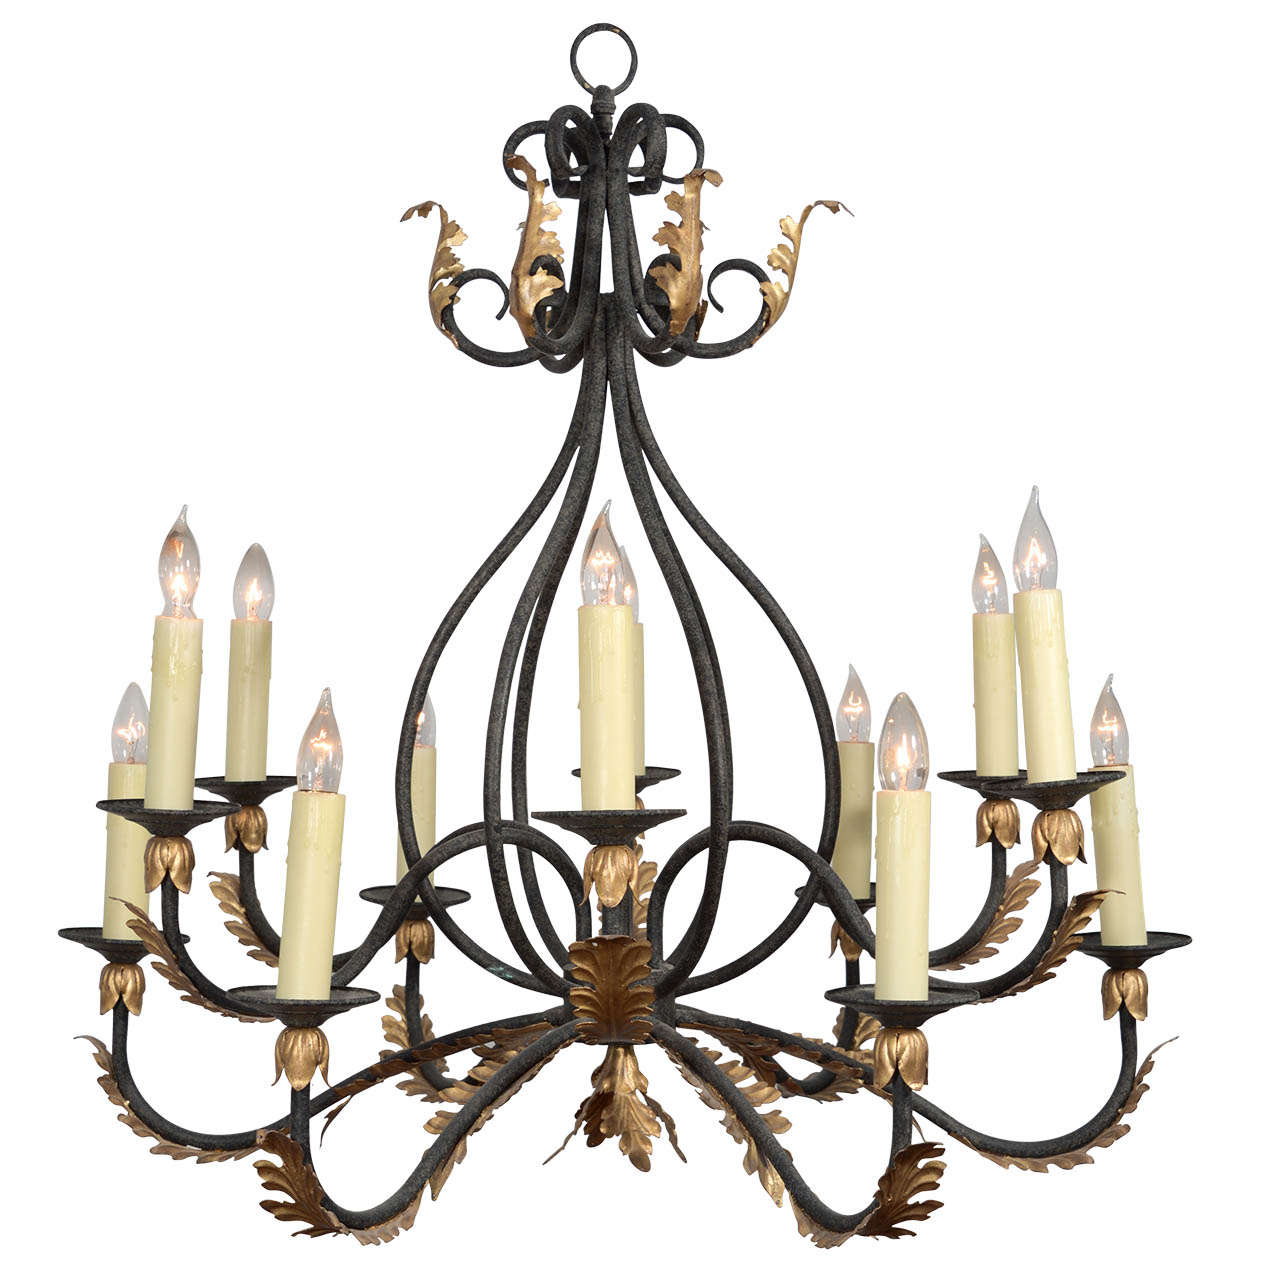 Wrought iron nine light iron chandelier with gold leaf acanthus wrought iron nine light iron chandelier with gold leaf acanthus leaf design 1 arubaitofo Choice Image